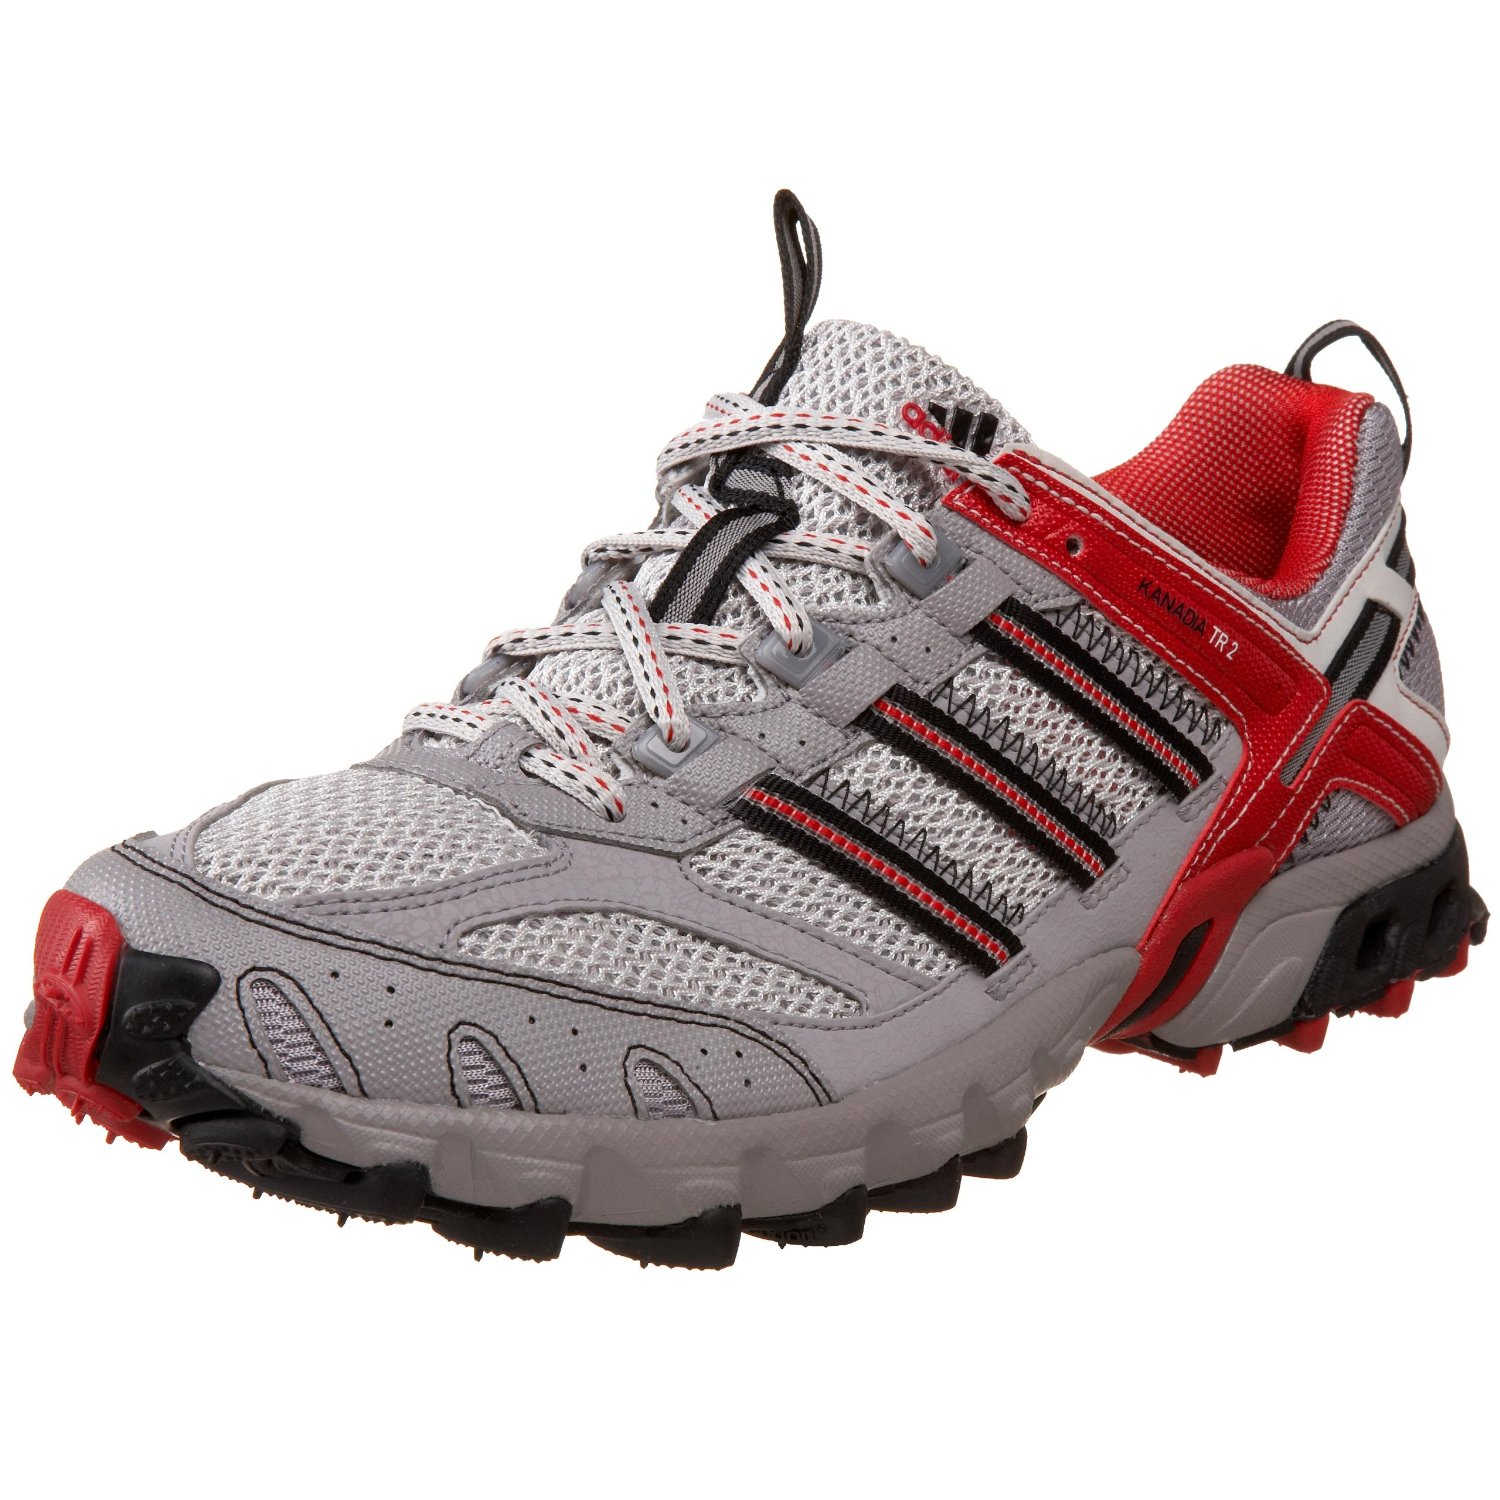 Sport Shoes Review: Adidas Men's Kanadia Trail 2 Trail